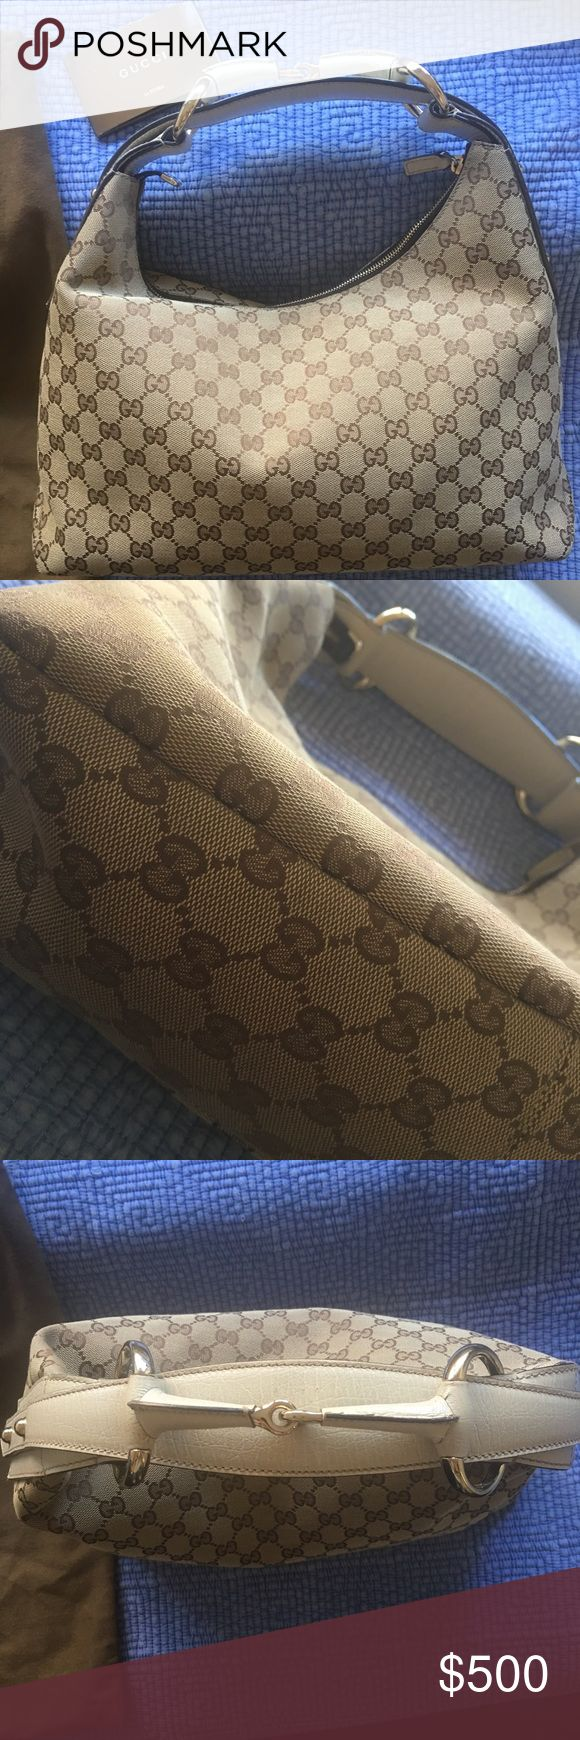 2008 Women's Gucci bag MINT condition This is authentic with official paperwork and receipt to prove it. The receipt faded a bit since it was bought in 2008 so I tried to filter it as much as possible so you can see the price my mom paid for it and the location where it was bought. It's in near mint condition. The only thing I don't have is the box but I have the Gucci cover for the bag. Price is negotiable let me know your best offer! Gucci Bags Shoulder Bags